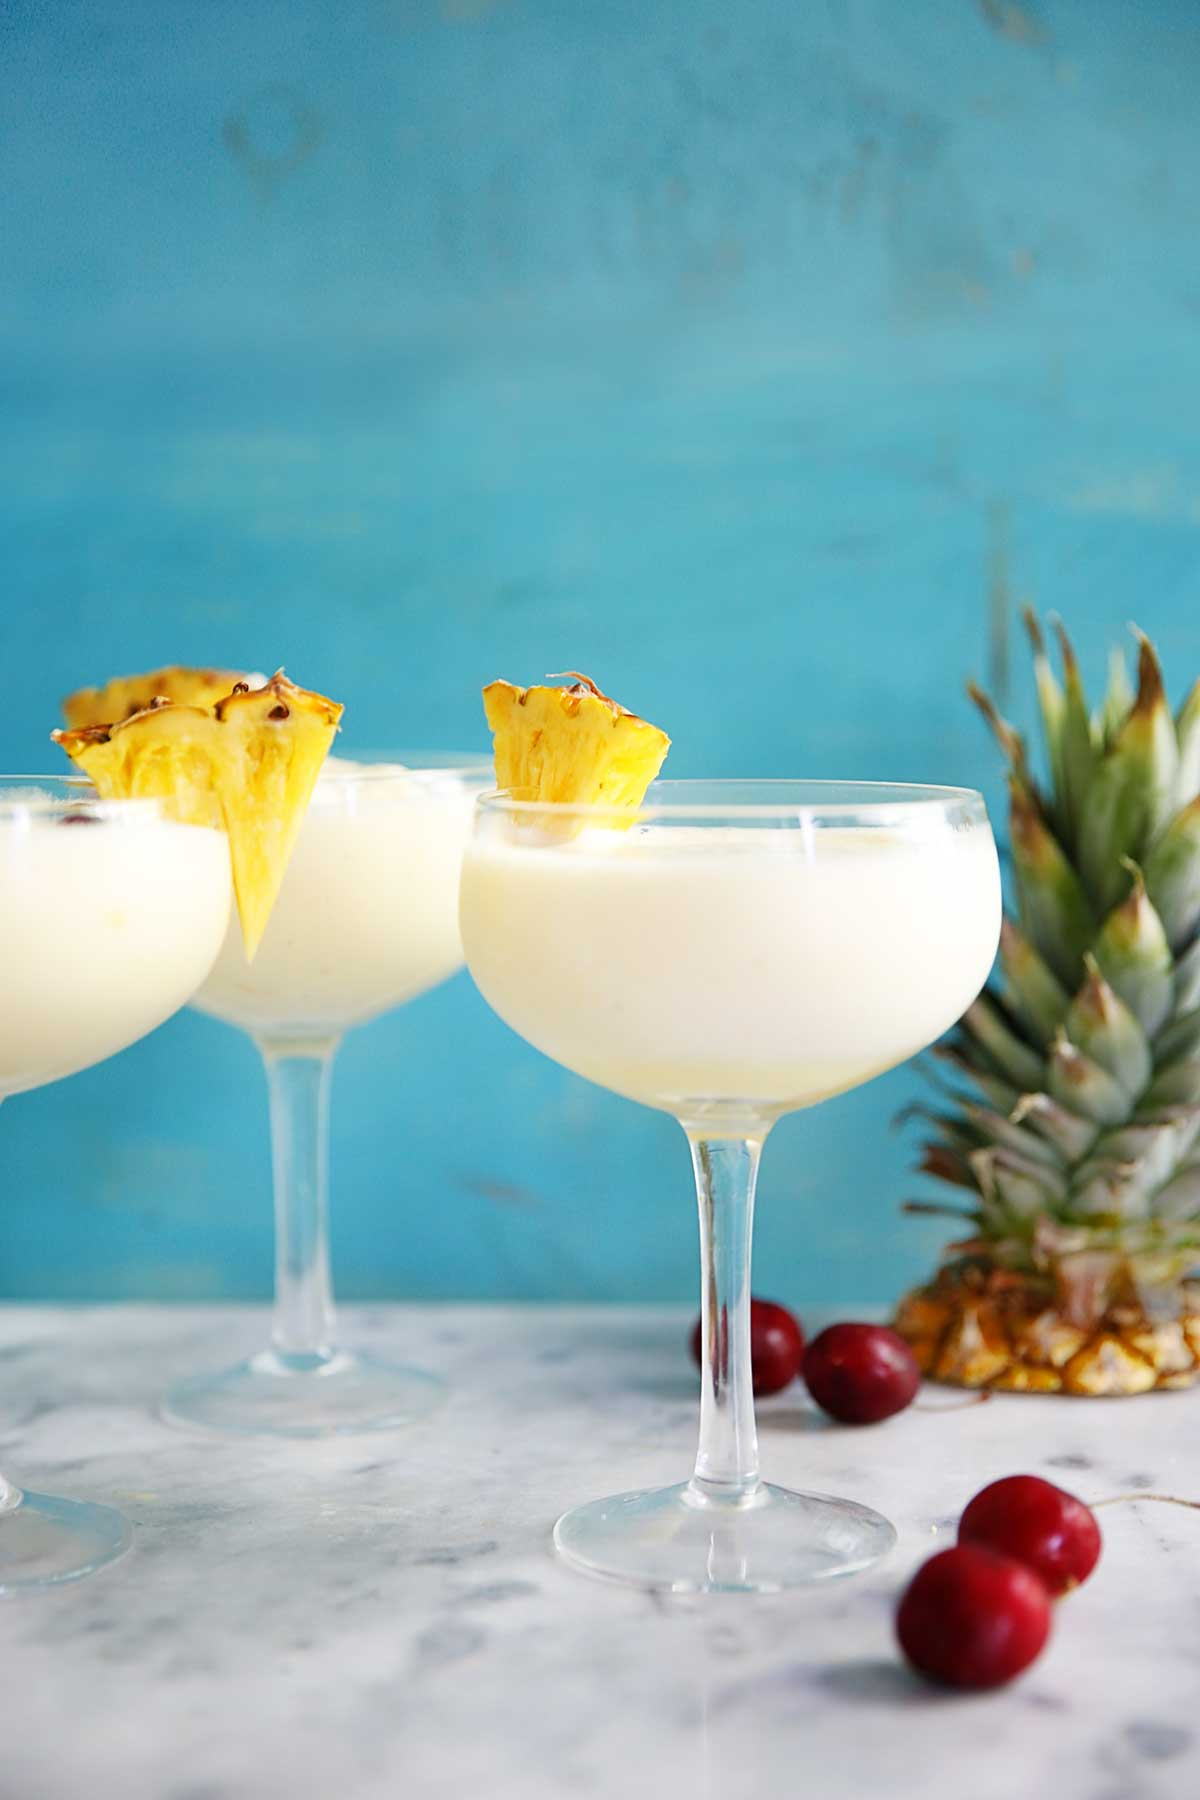 Healthy Pina colada recipe in glasses.